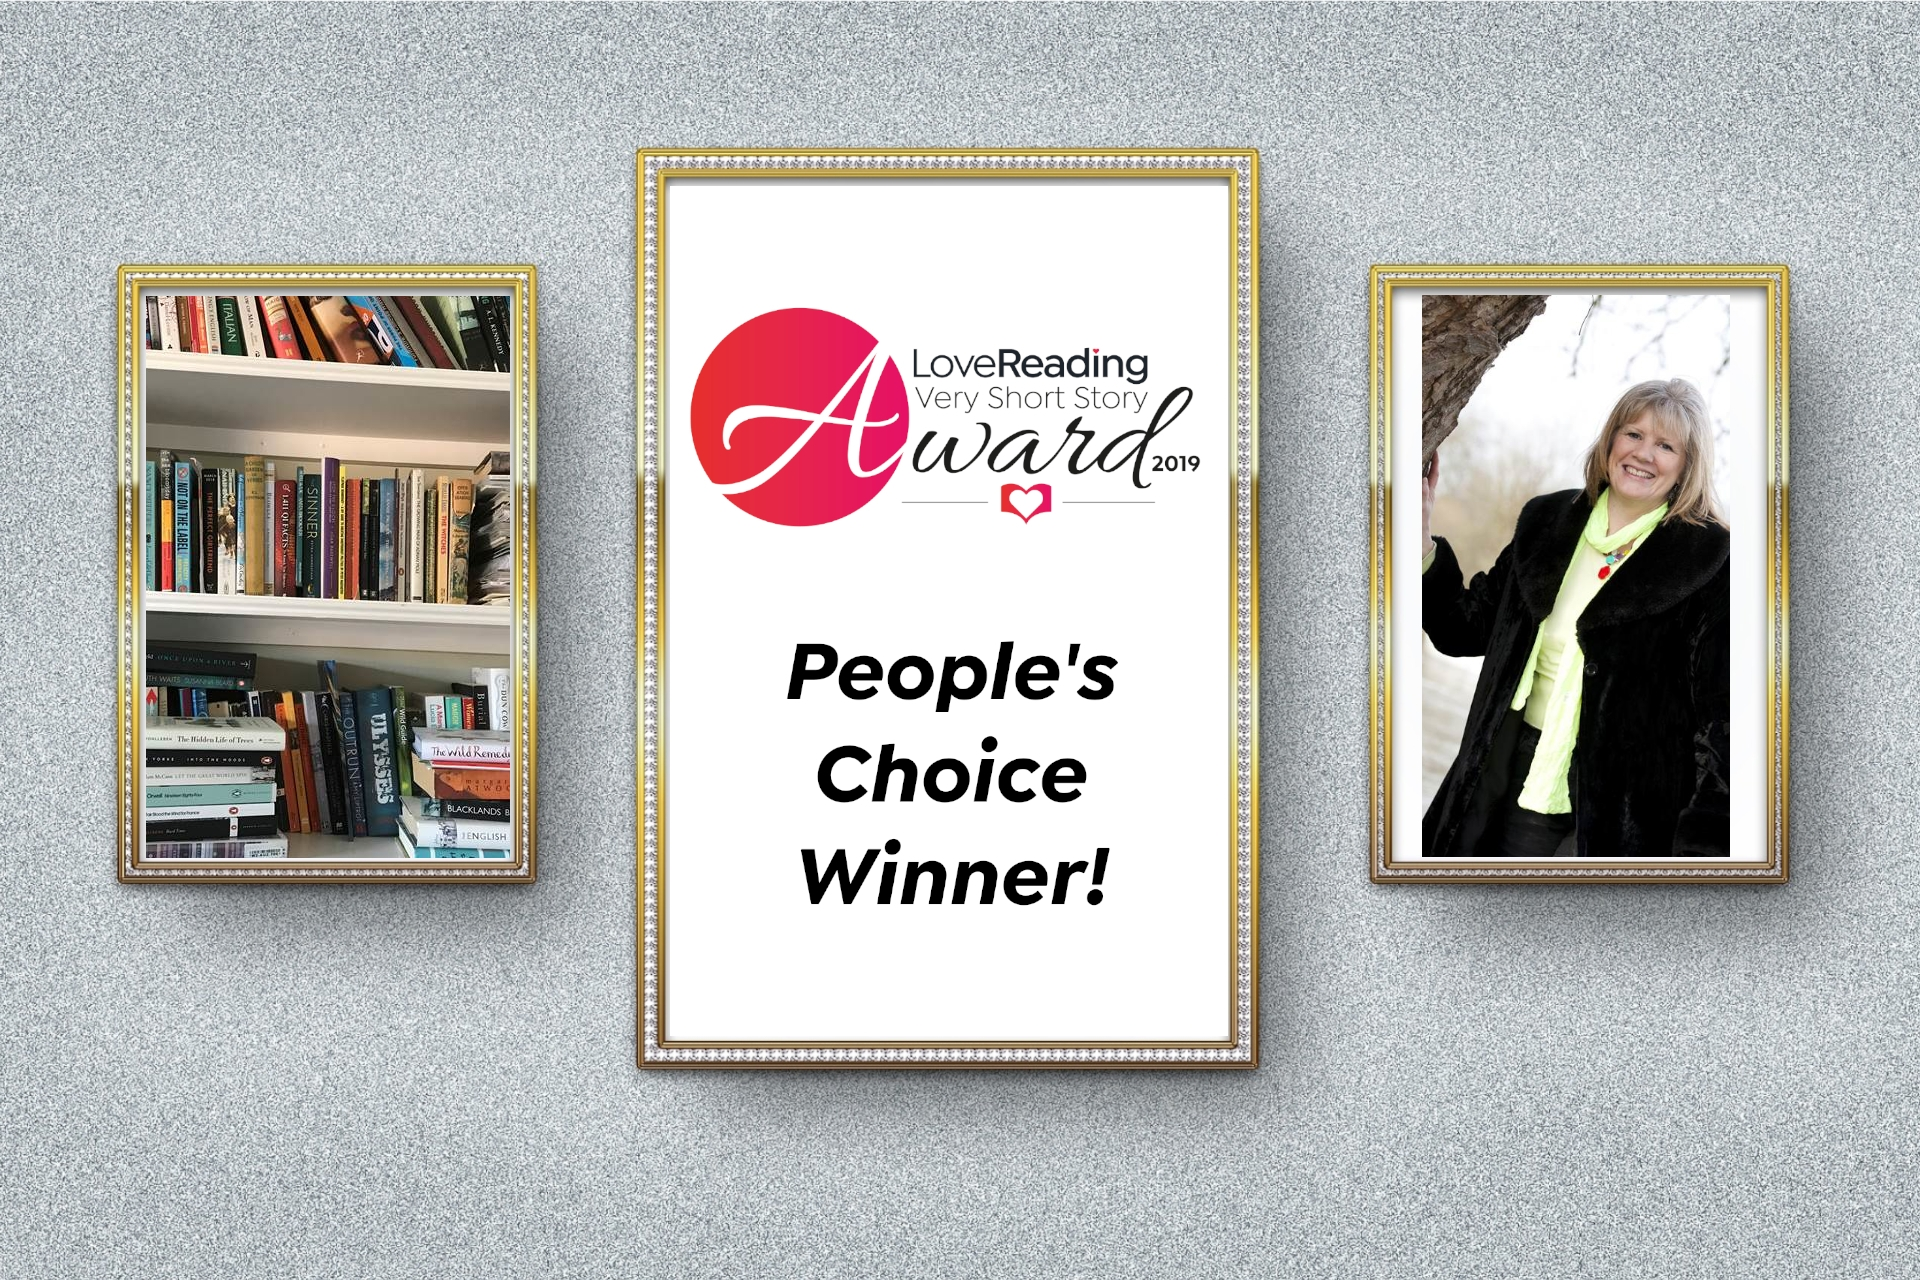 Winner of the LoveReading Very Short Story Award 2019 - People's Choice: Jan Stannard